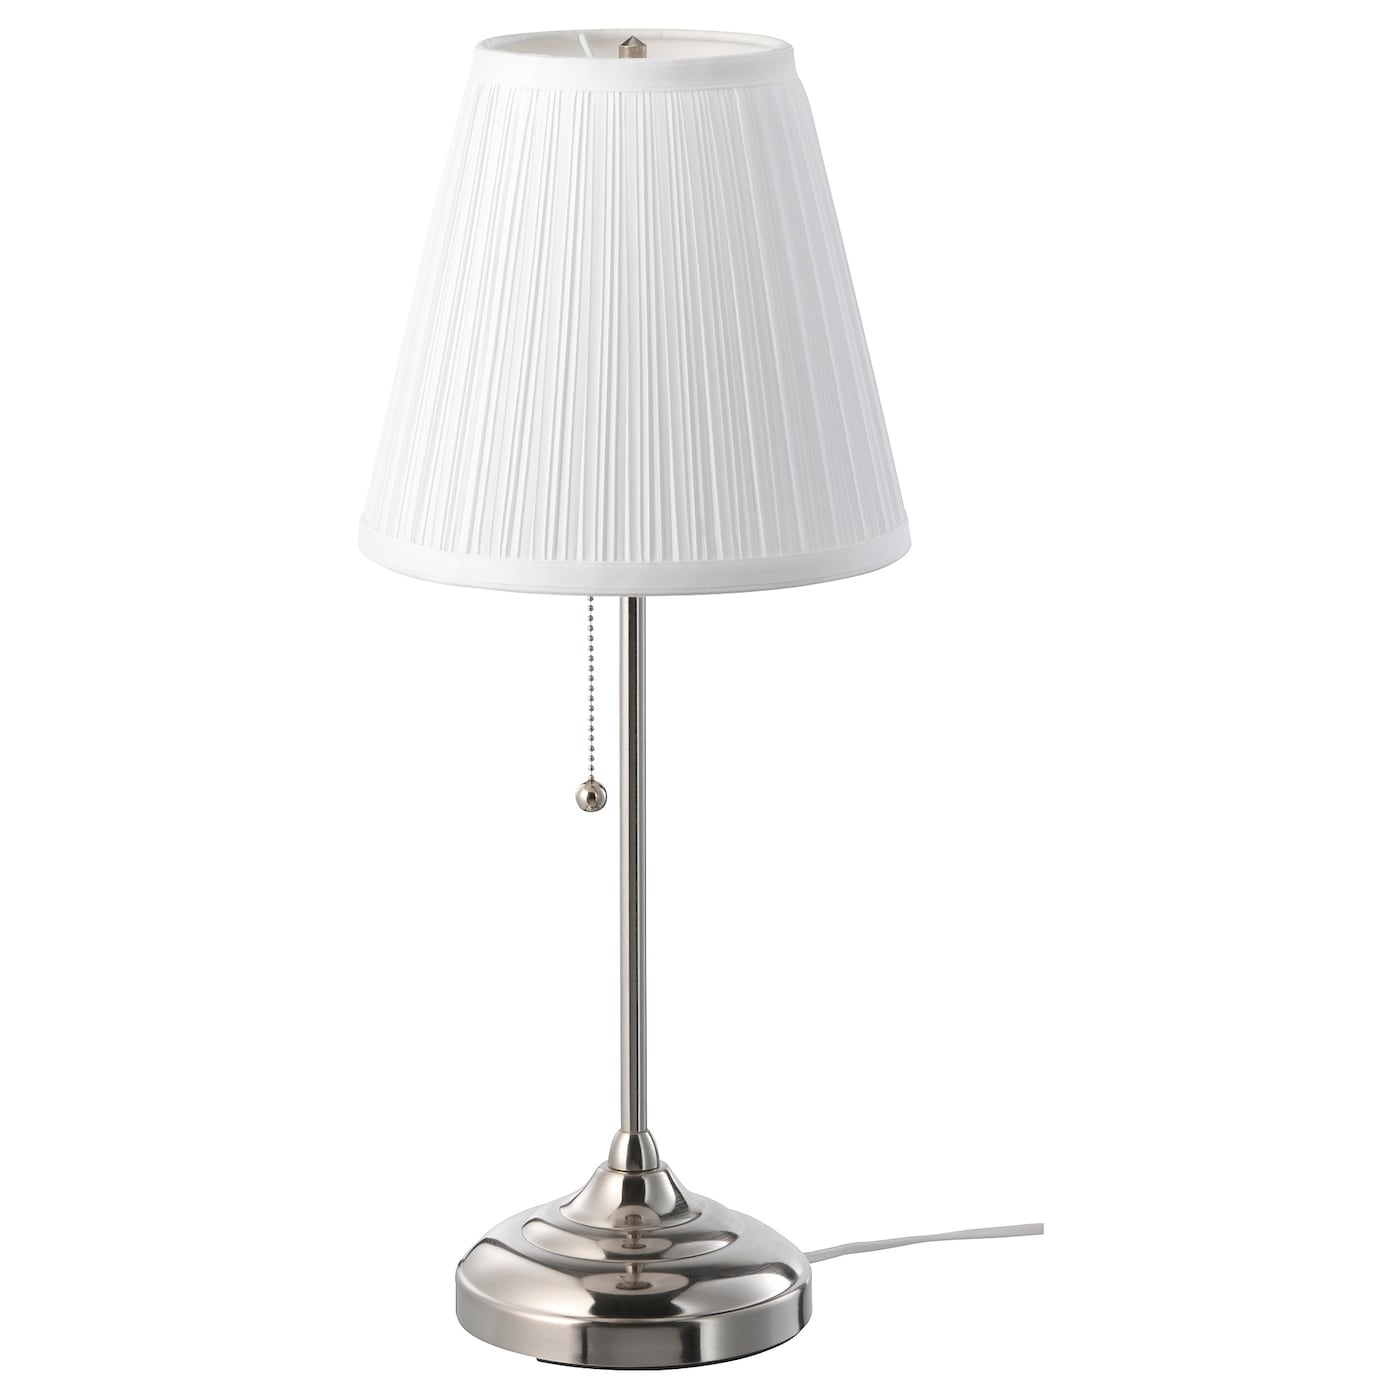 ÅRSTID Lampe de table nickelé, blanc